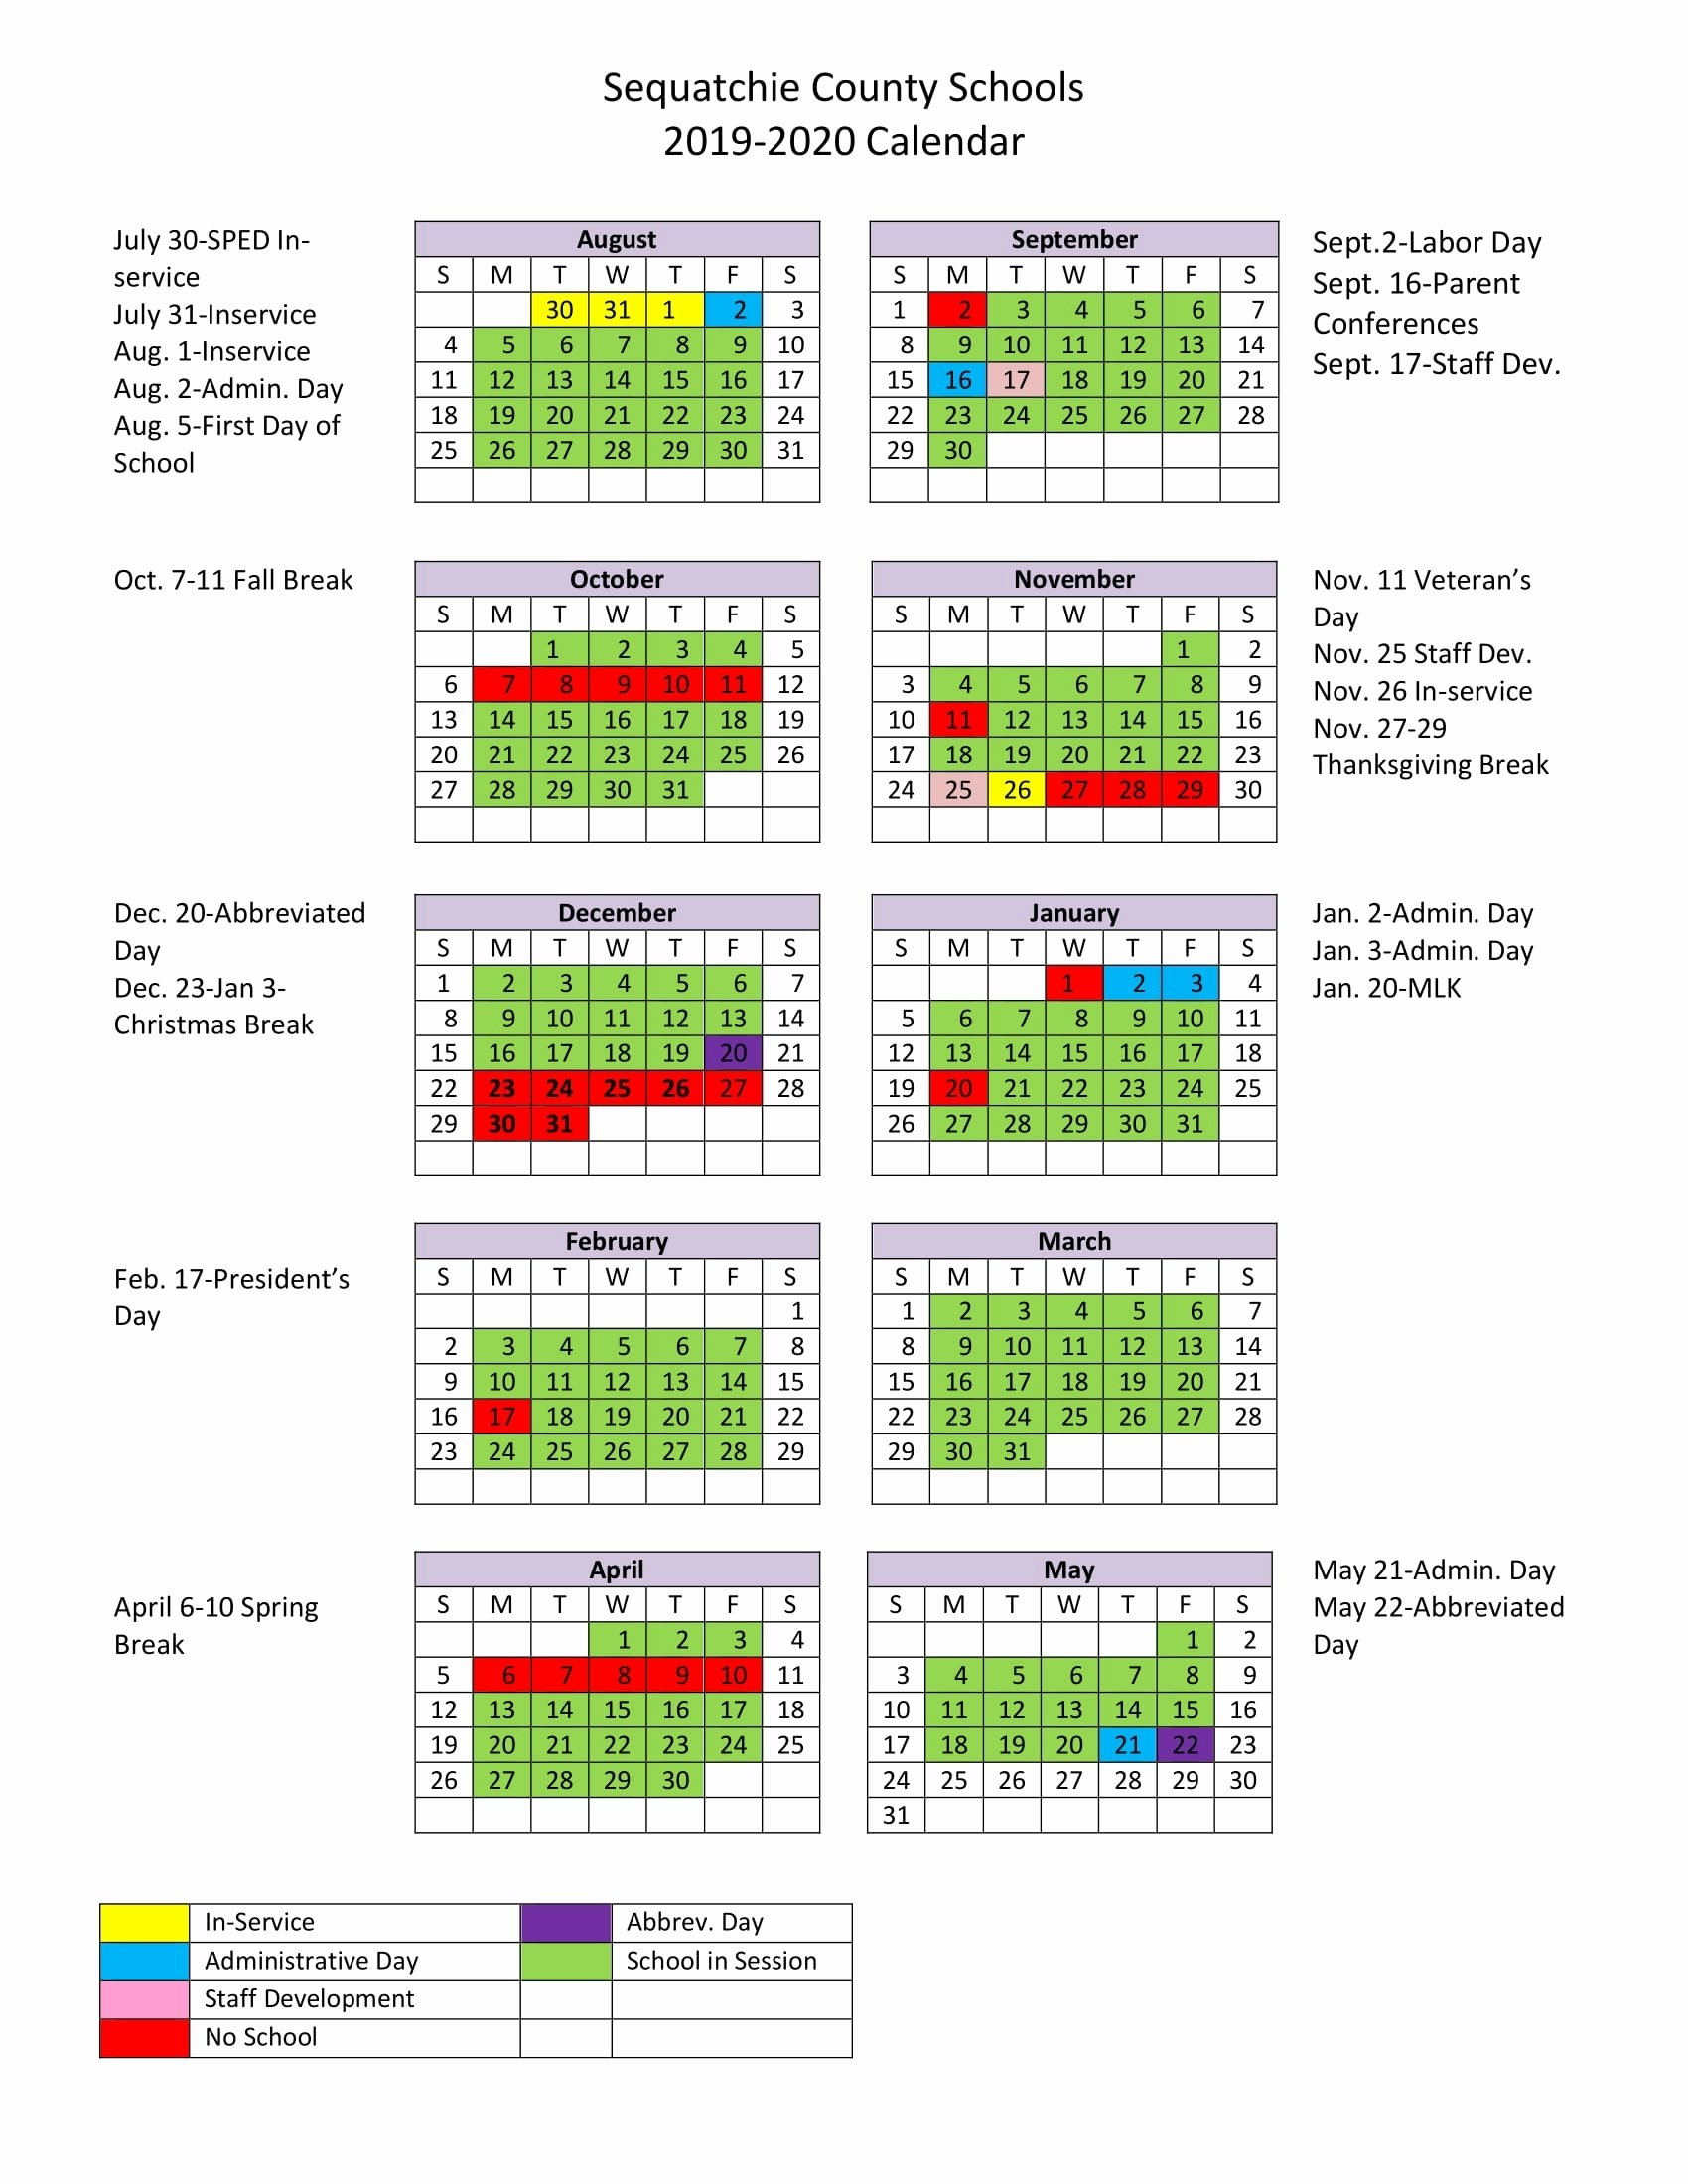 Mr. Mccluskey's Class Lausd 2020 Calendar – Get Your Calendar Printable Lausd Calendar 2019-20